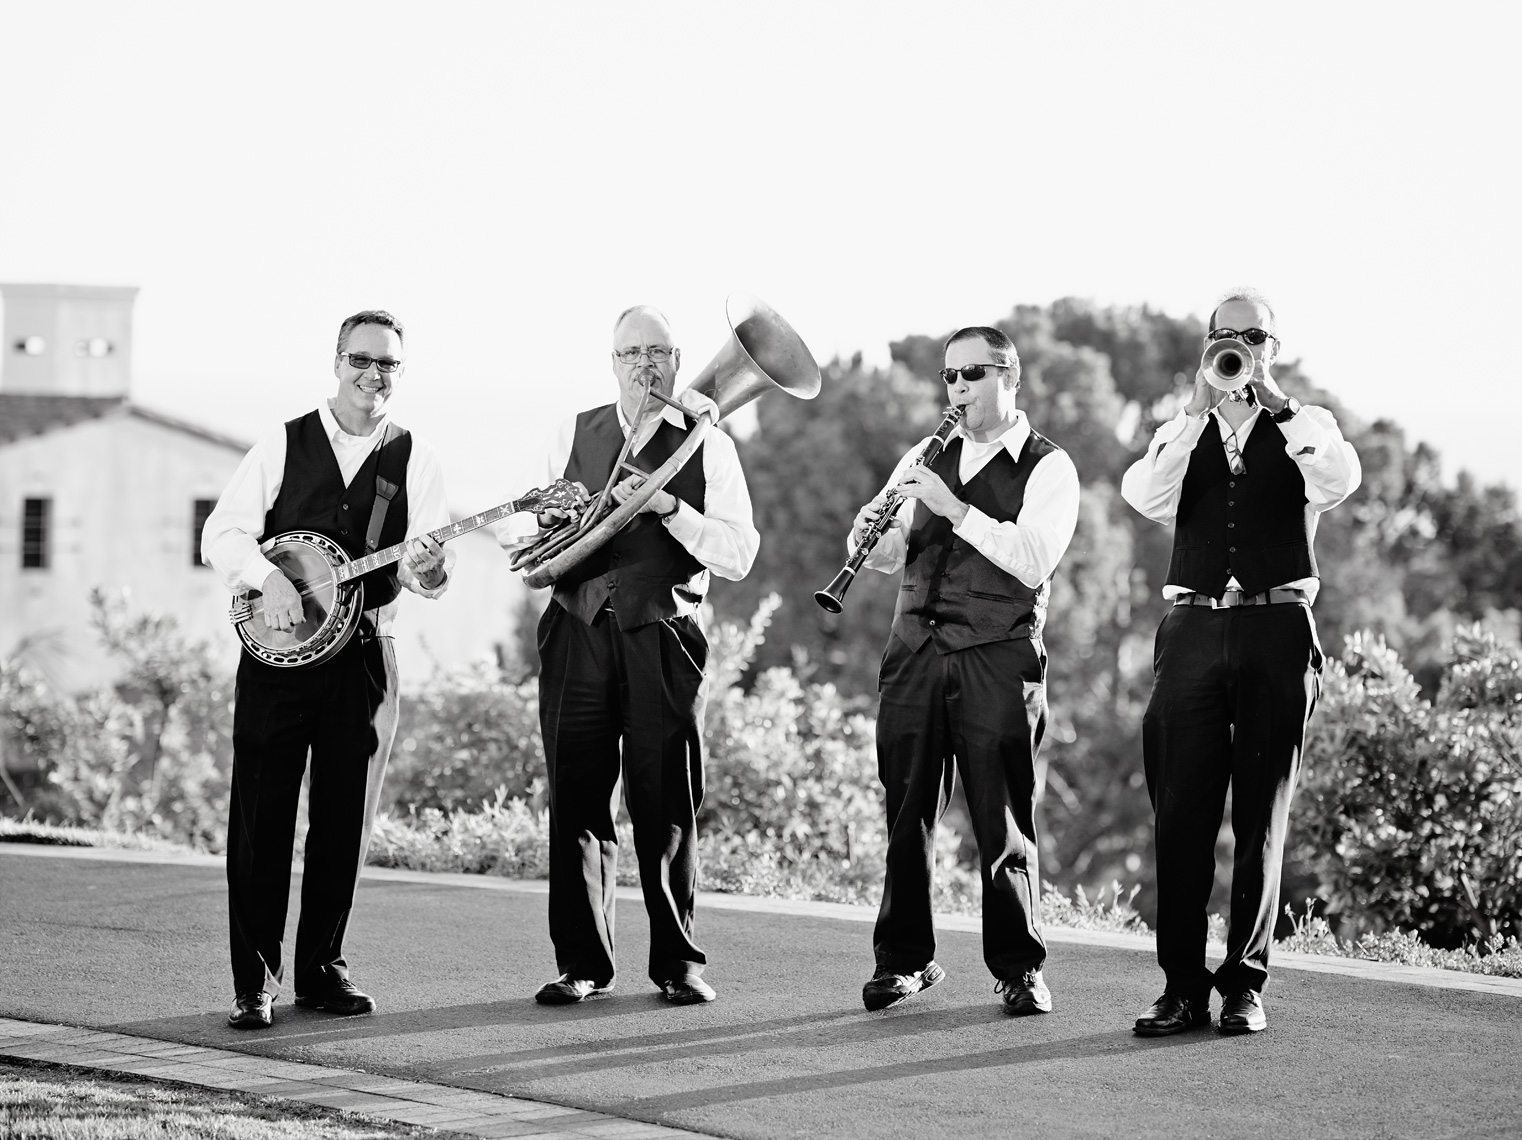 Band performs during cocktail reception at Terranea Resort in Rancho Palos Verdes